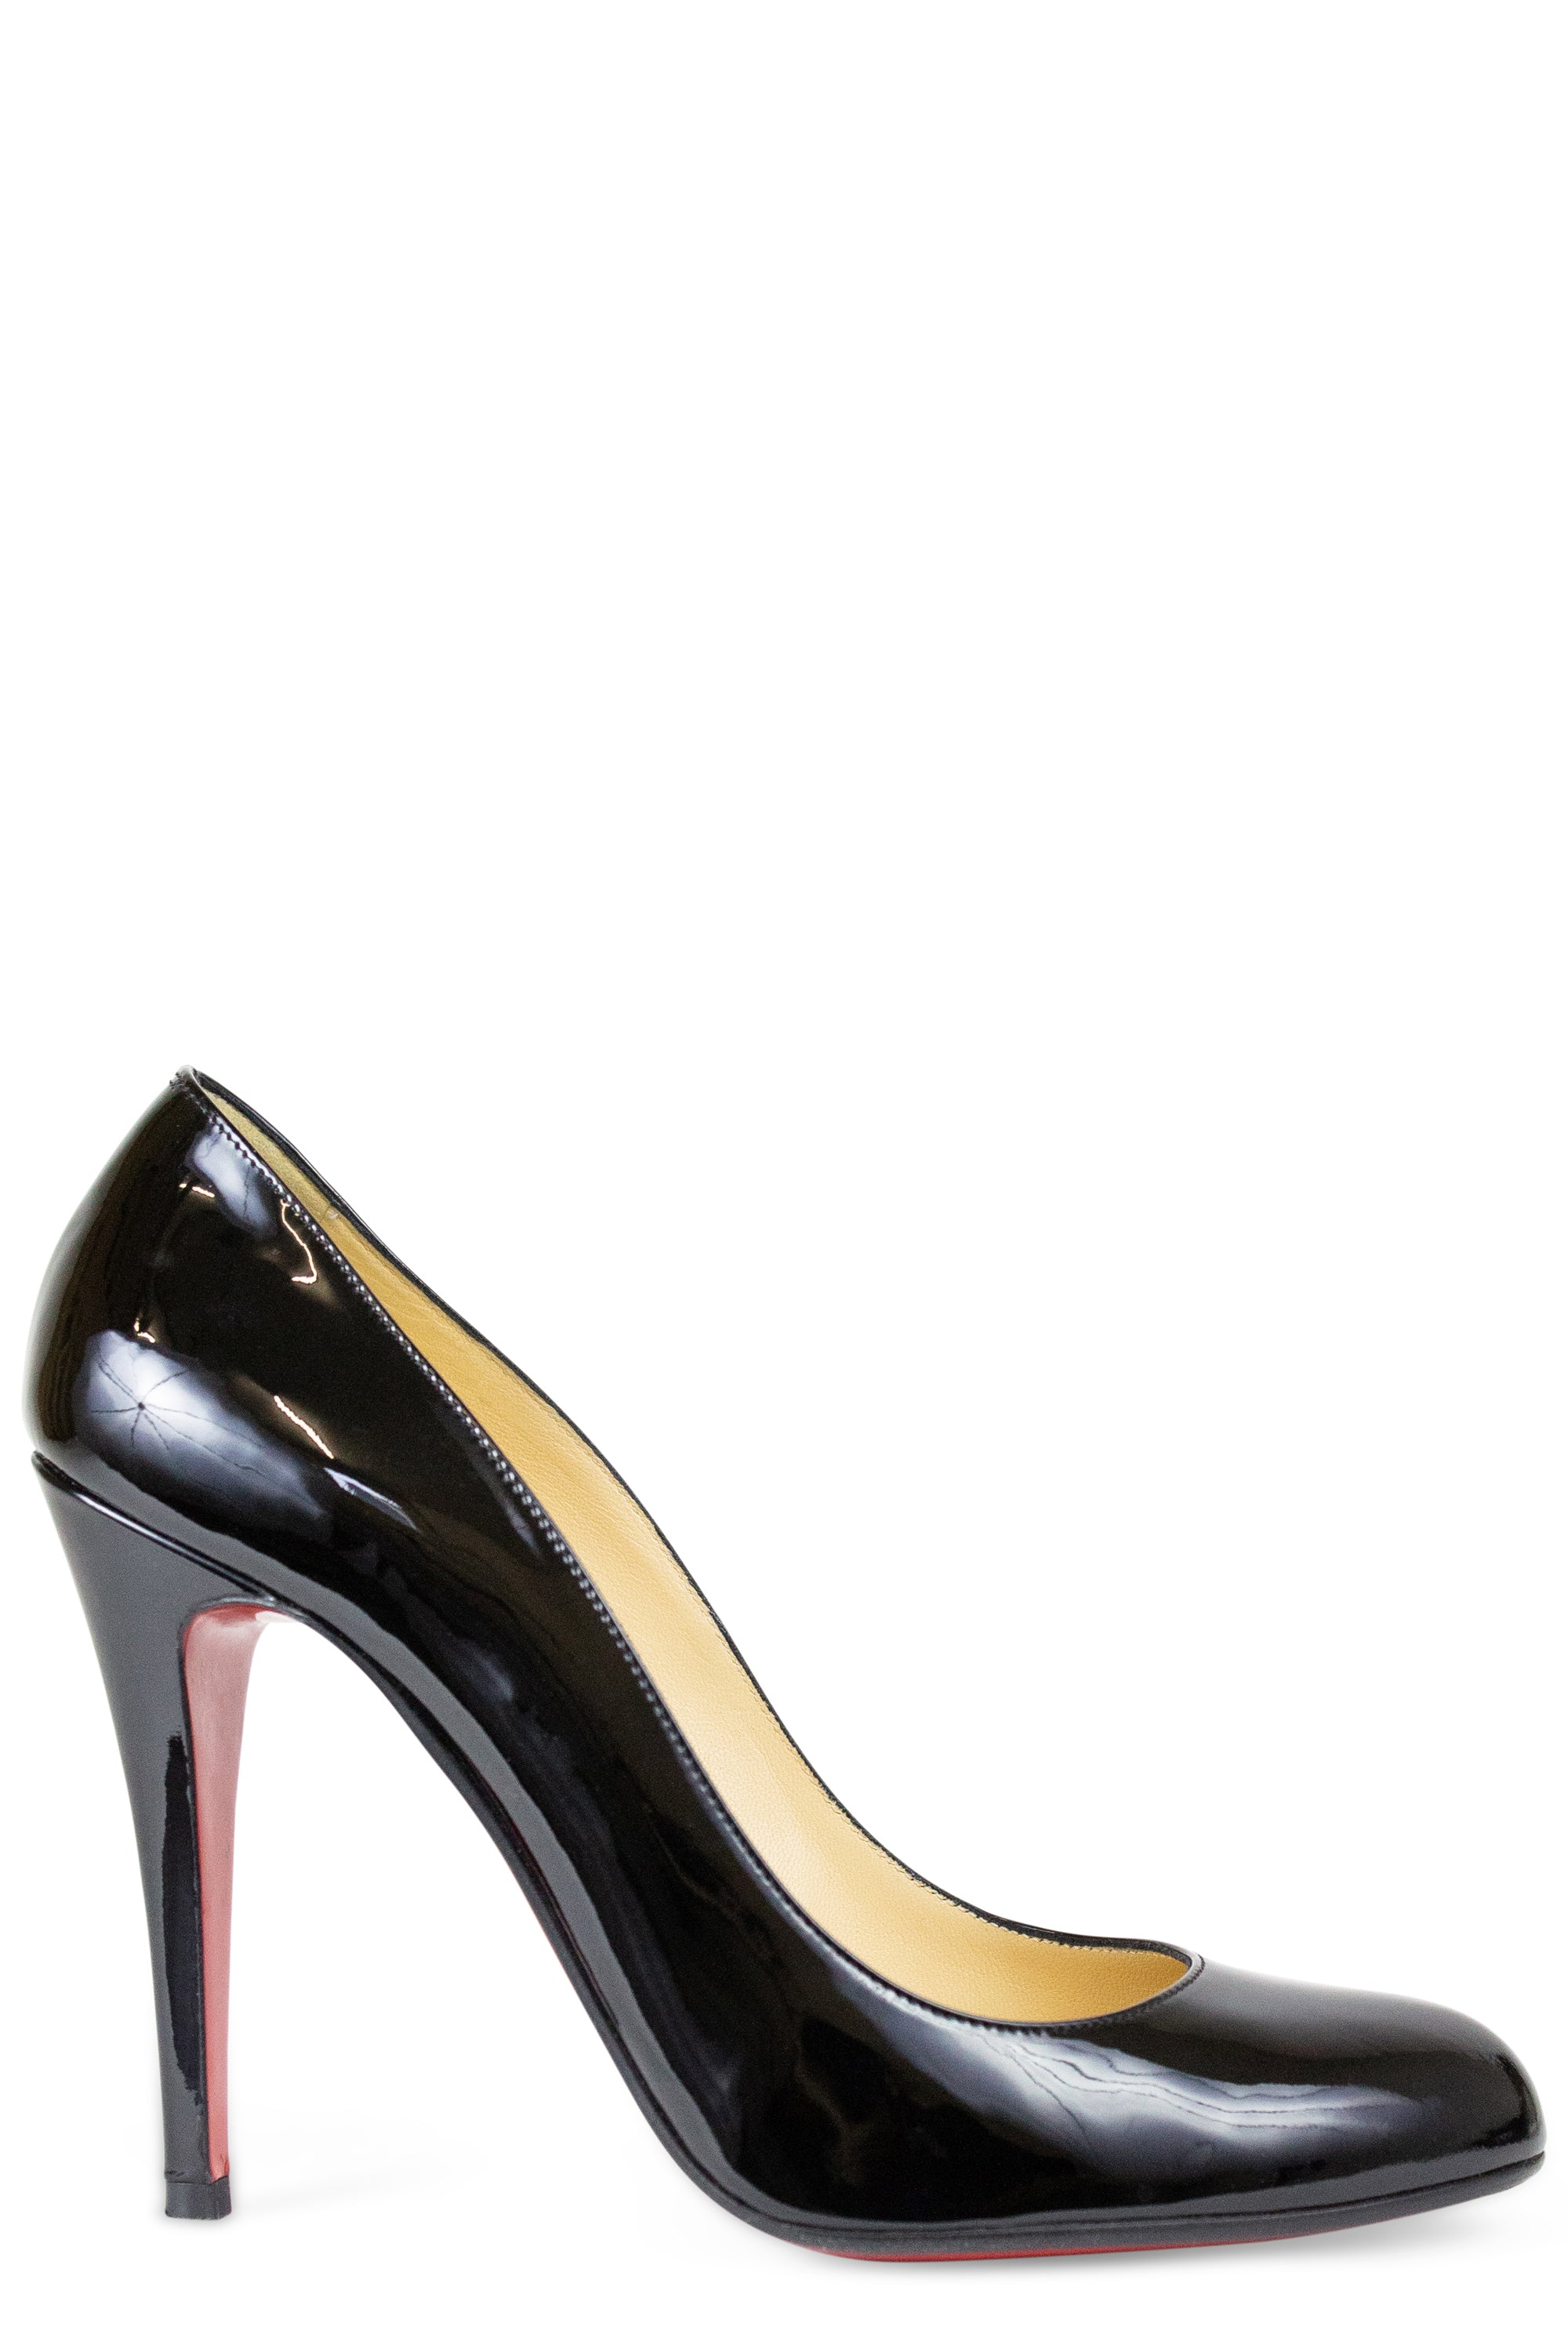 design intemporel ba297 cc069 LOUBOUTIN Fifille Patent Pumps